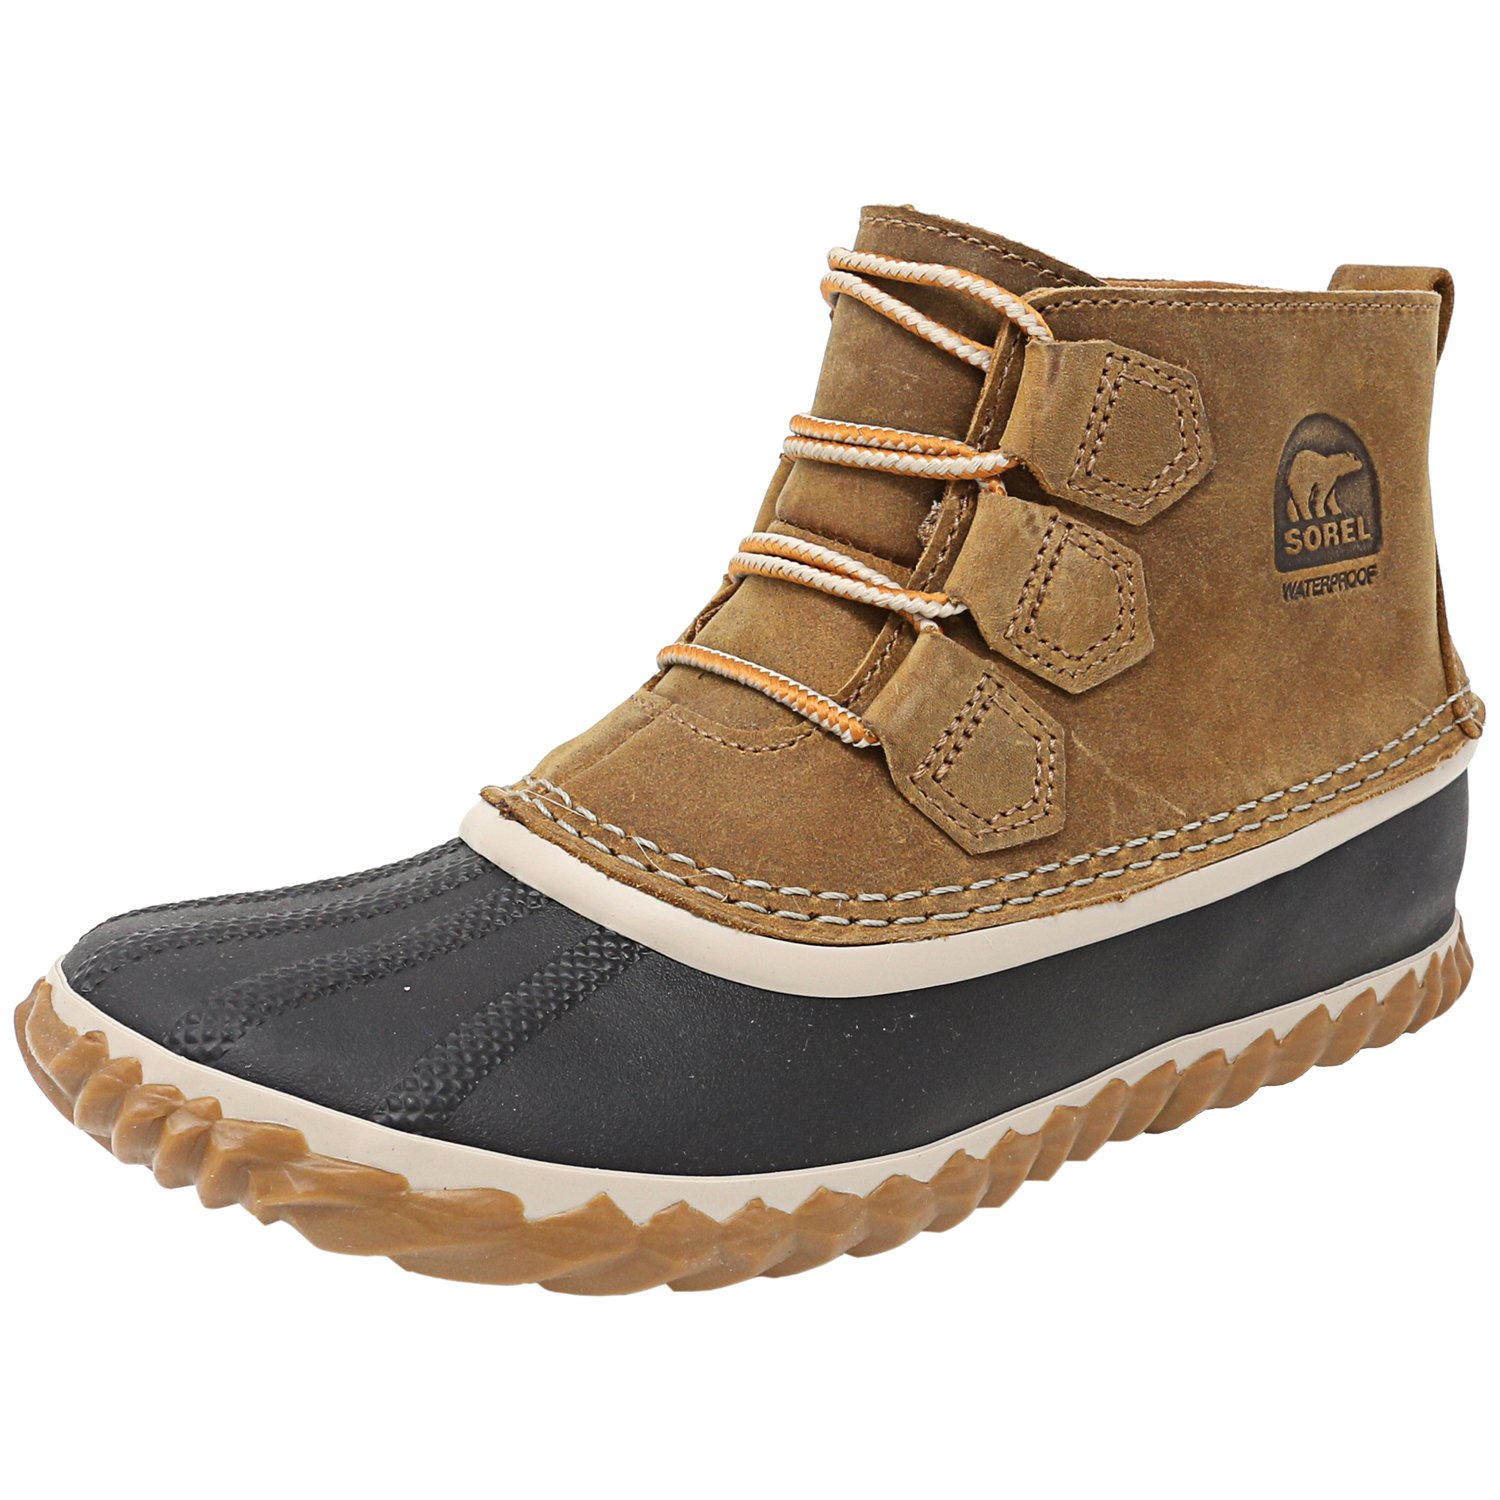 Sorel Women's Out N About Elk Ankle-High Leather Rain Boo...